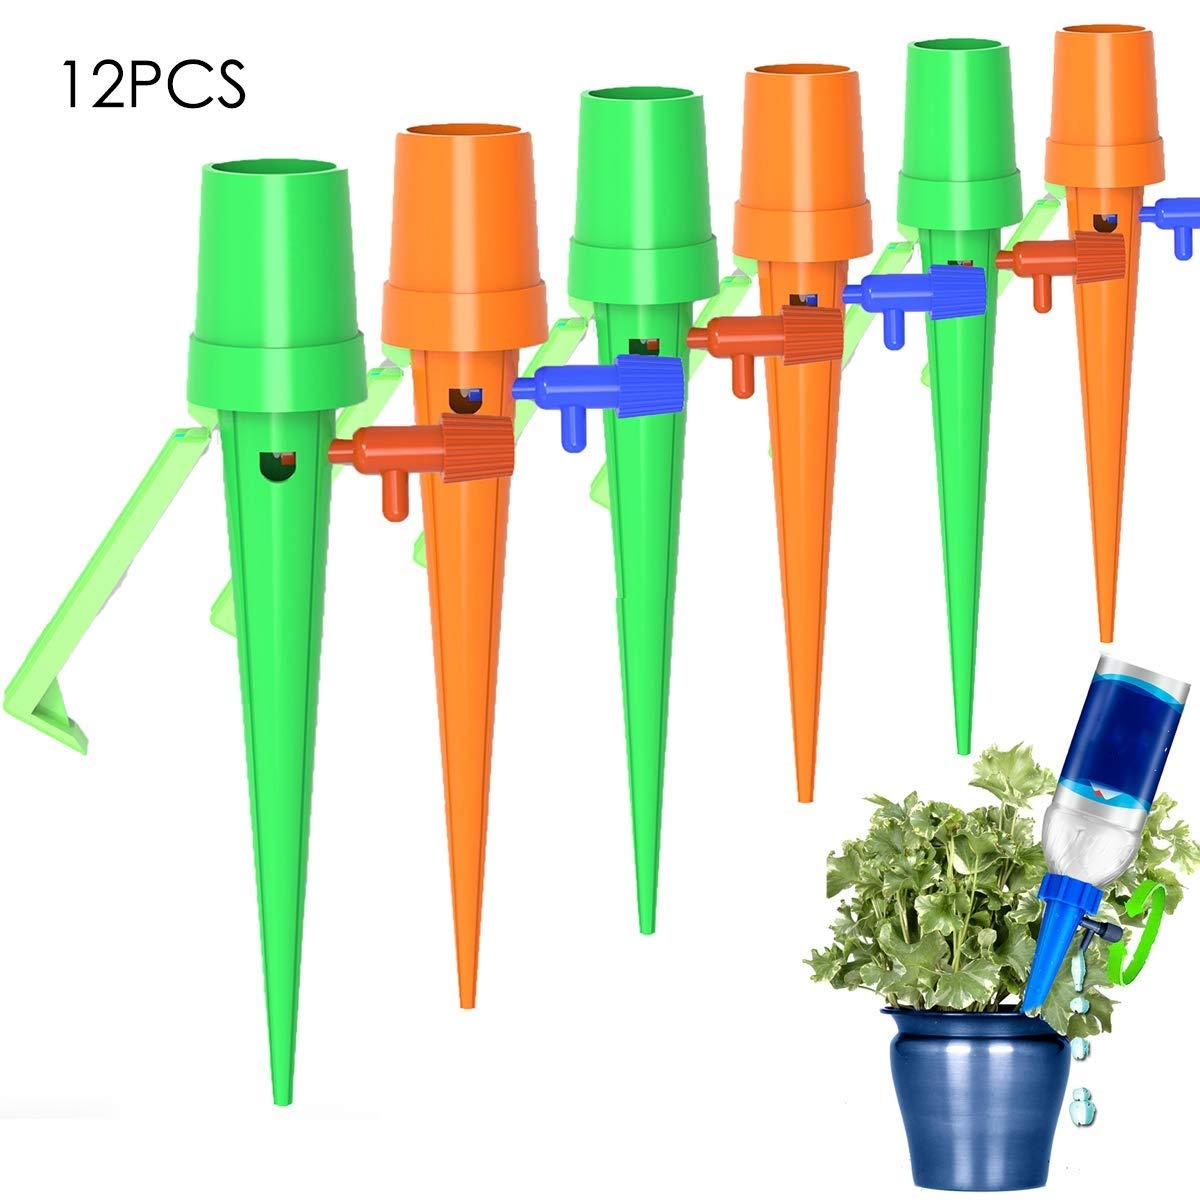 Plant Waterer with Holder Anti-Fall Automatic Vacation Drip Irrigation Watering Devices Slow Release Control Switch for Outdoor Indoor Plants Tree Aisheny 12Pcs Upgraded Self Watering Spikes System